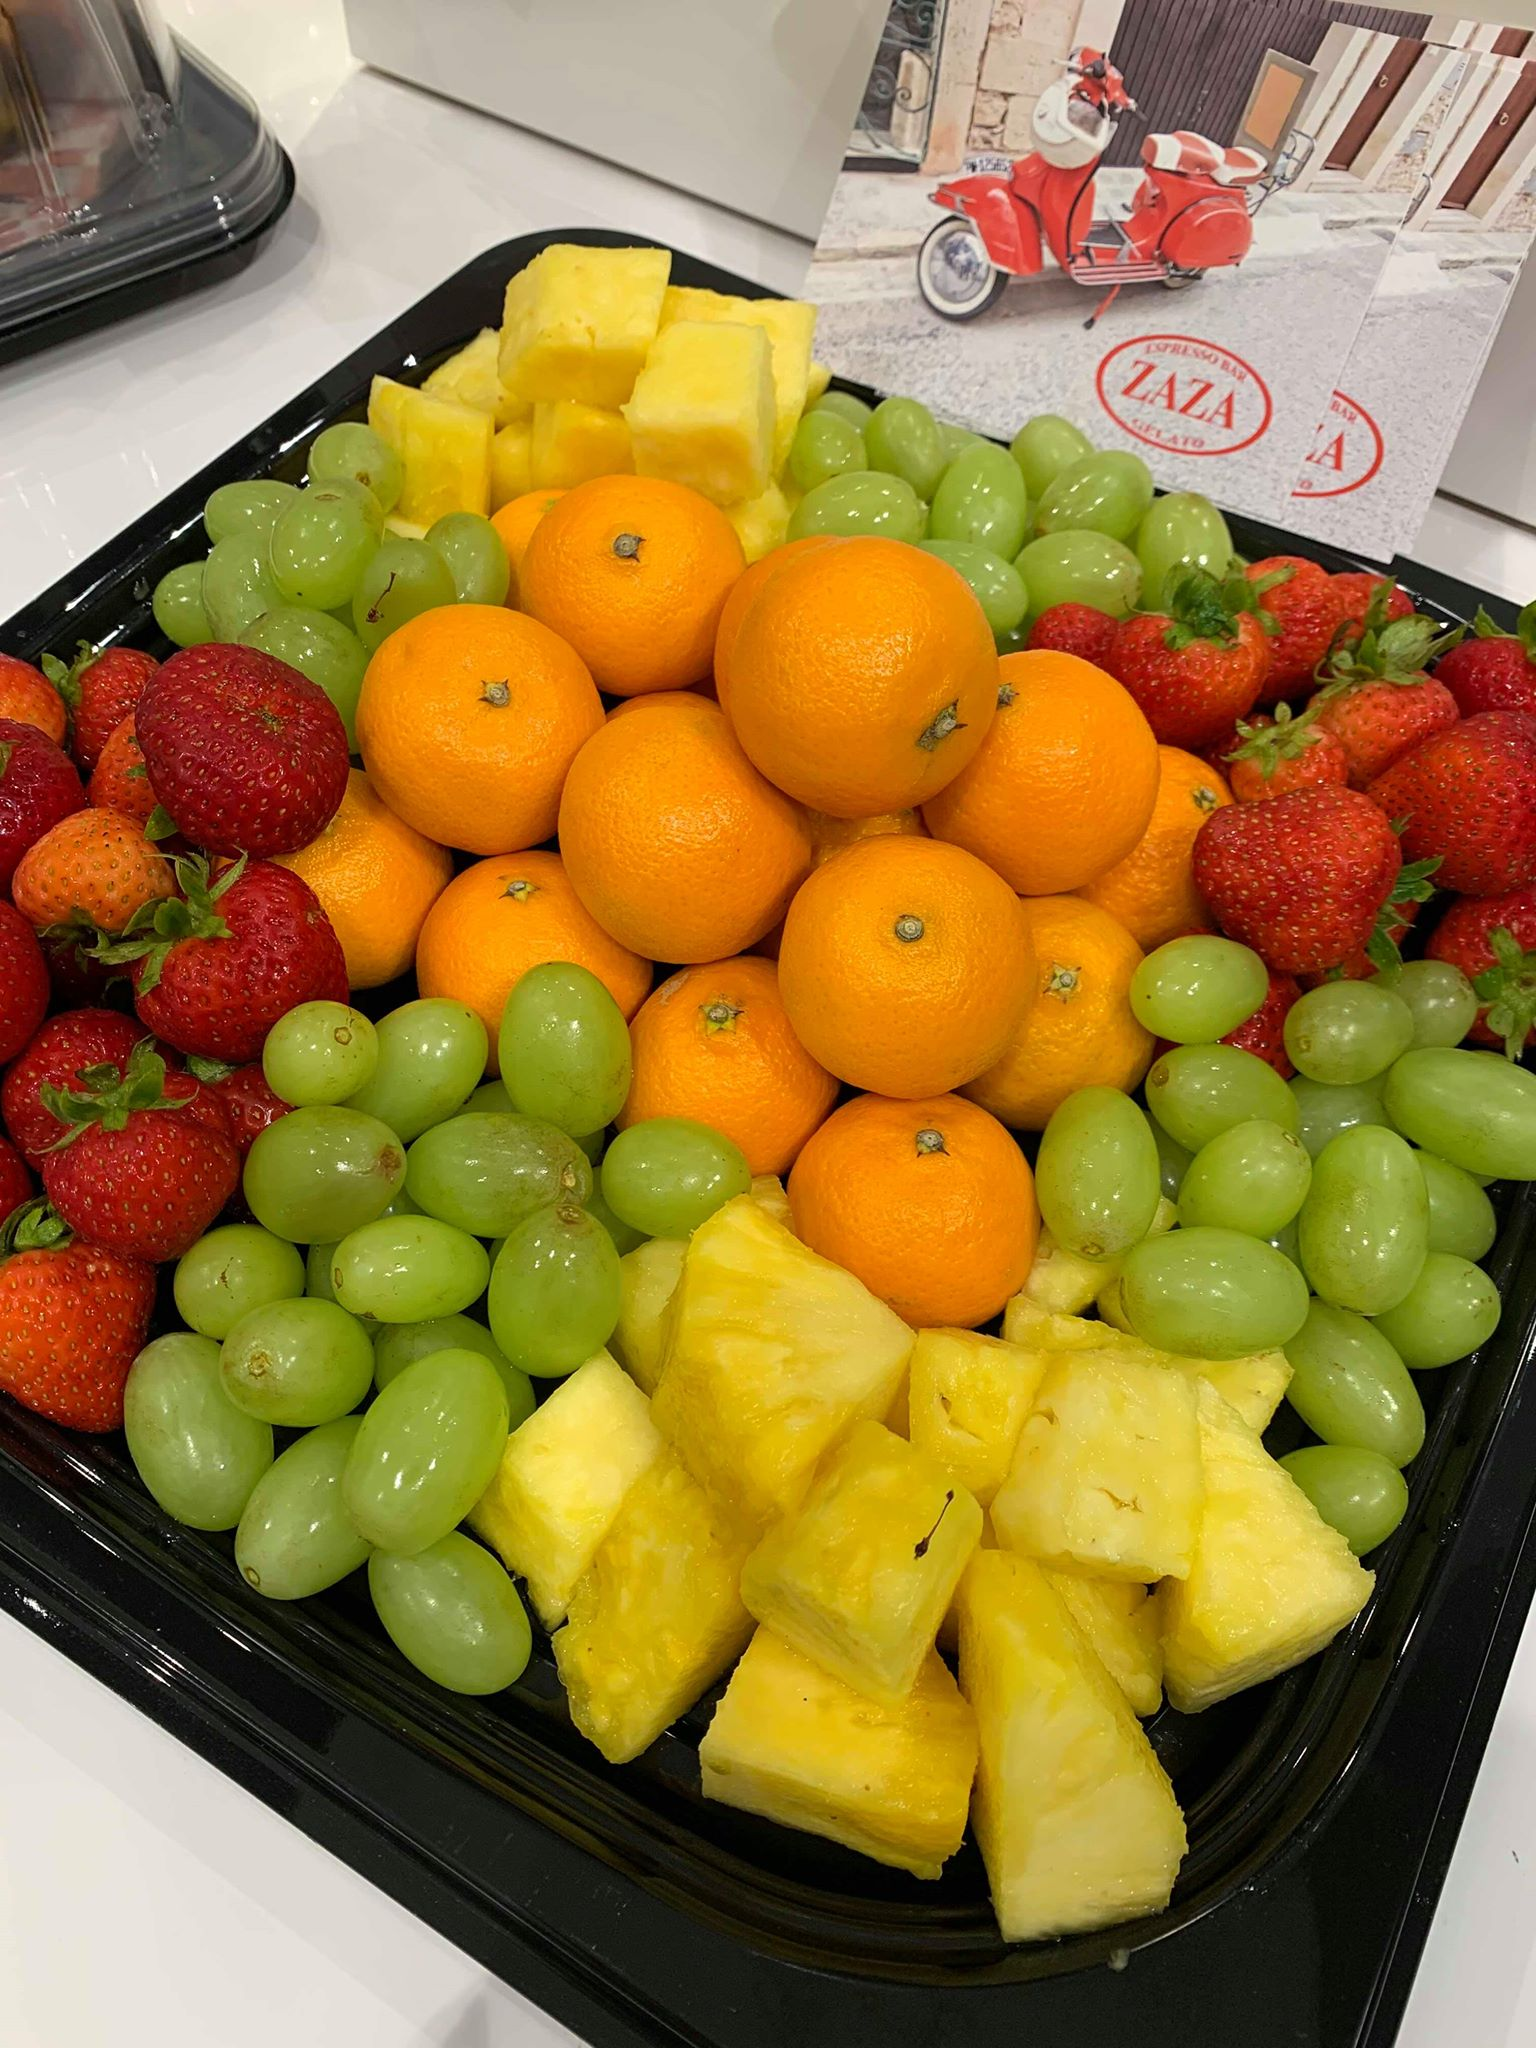 ZAZA Catered Fruit Tray